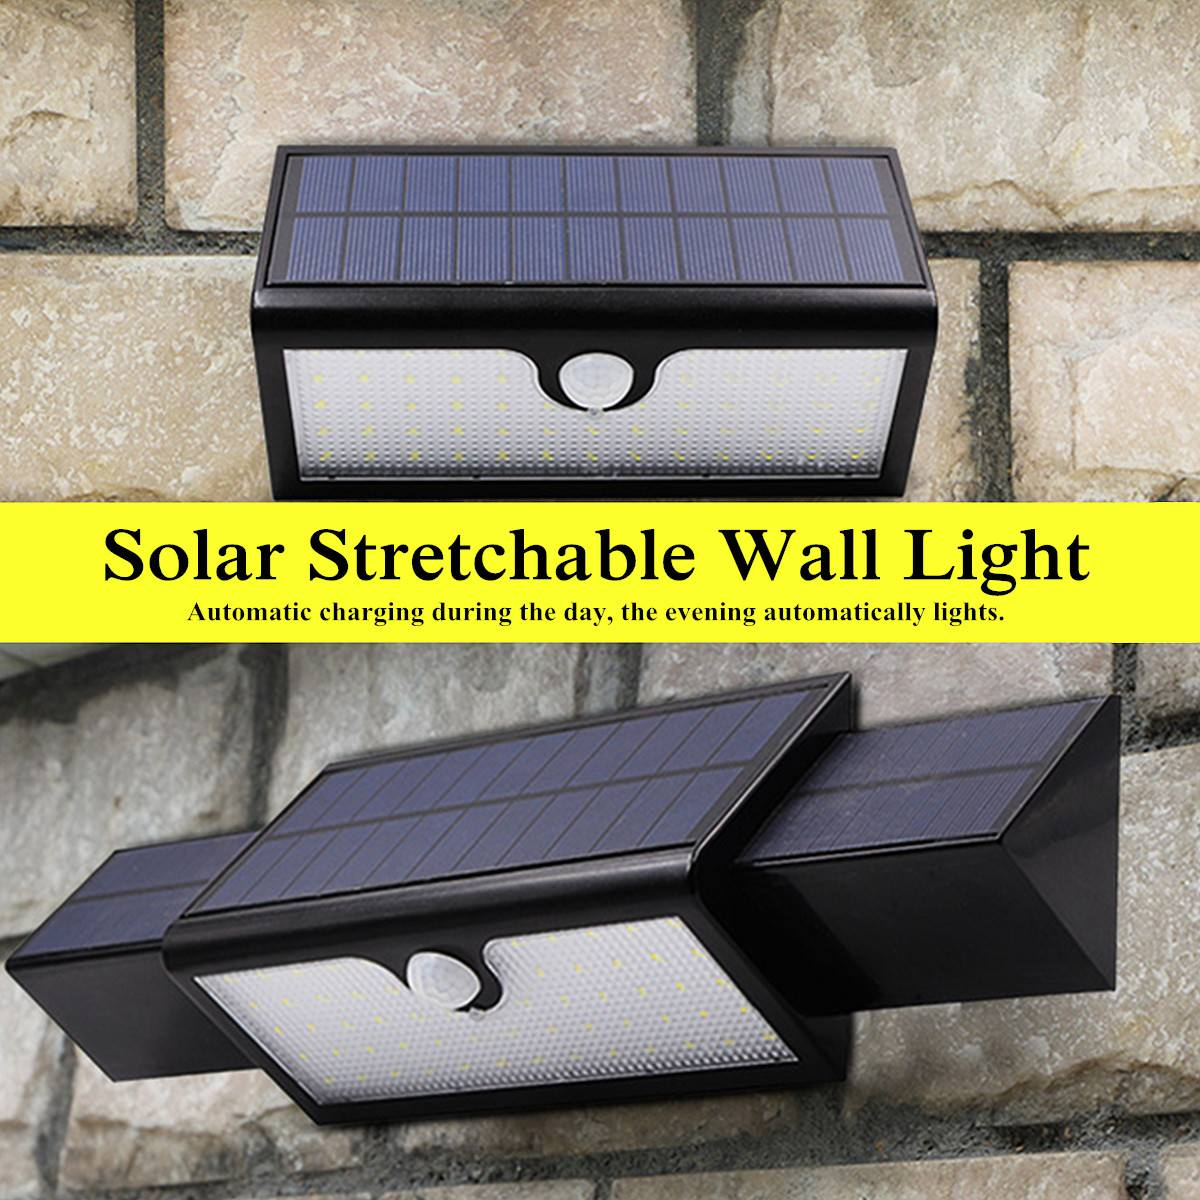 71 LED Solar Power Wall Light Stretchable Waterproof Safety 3 Modes 5.5V 5.4W Discharge/Over Current/Short Circuit Protection